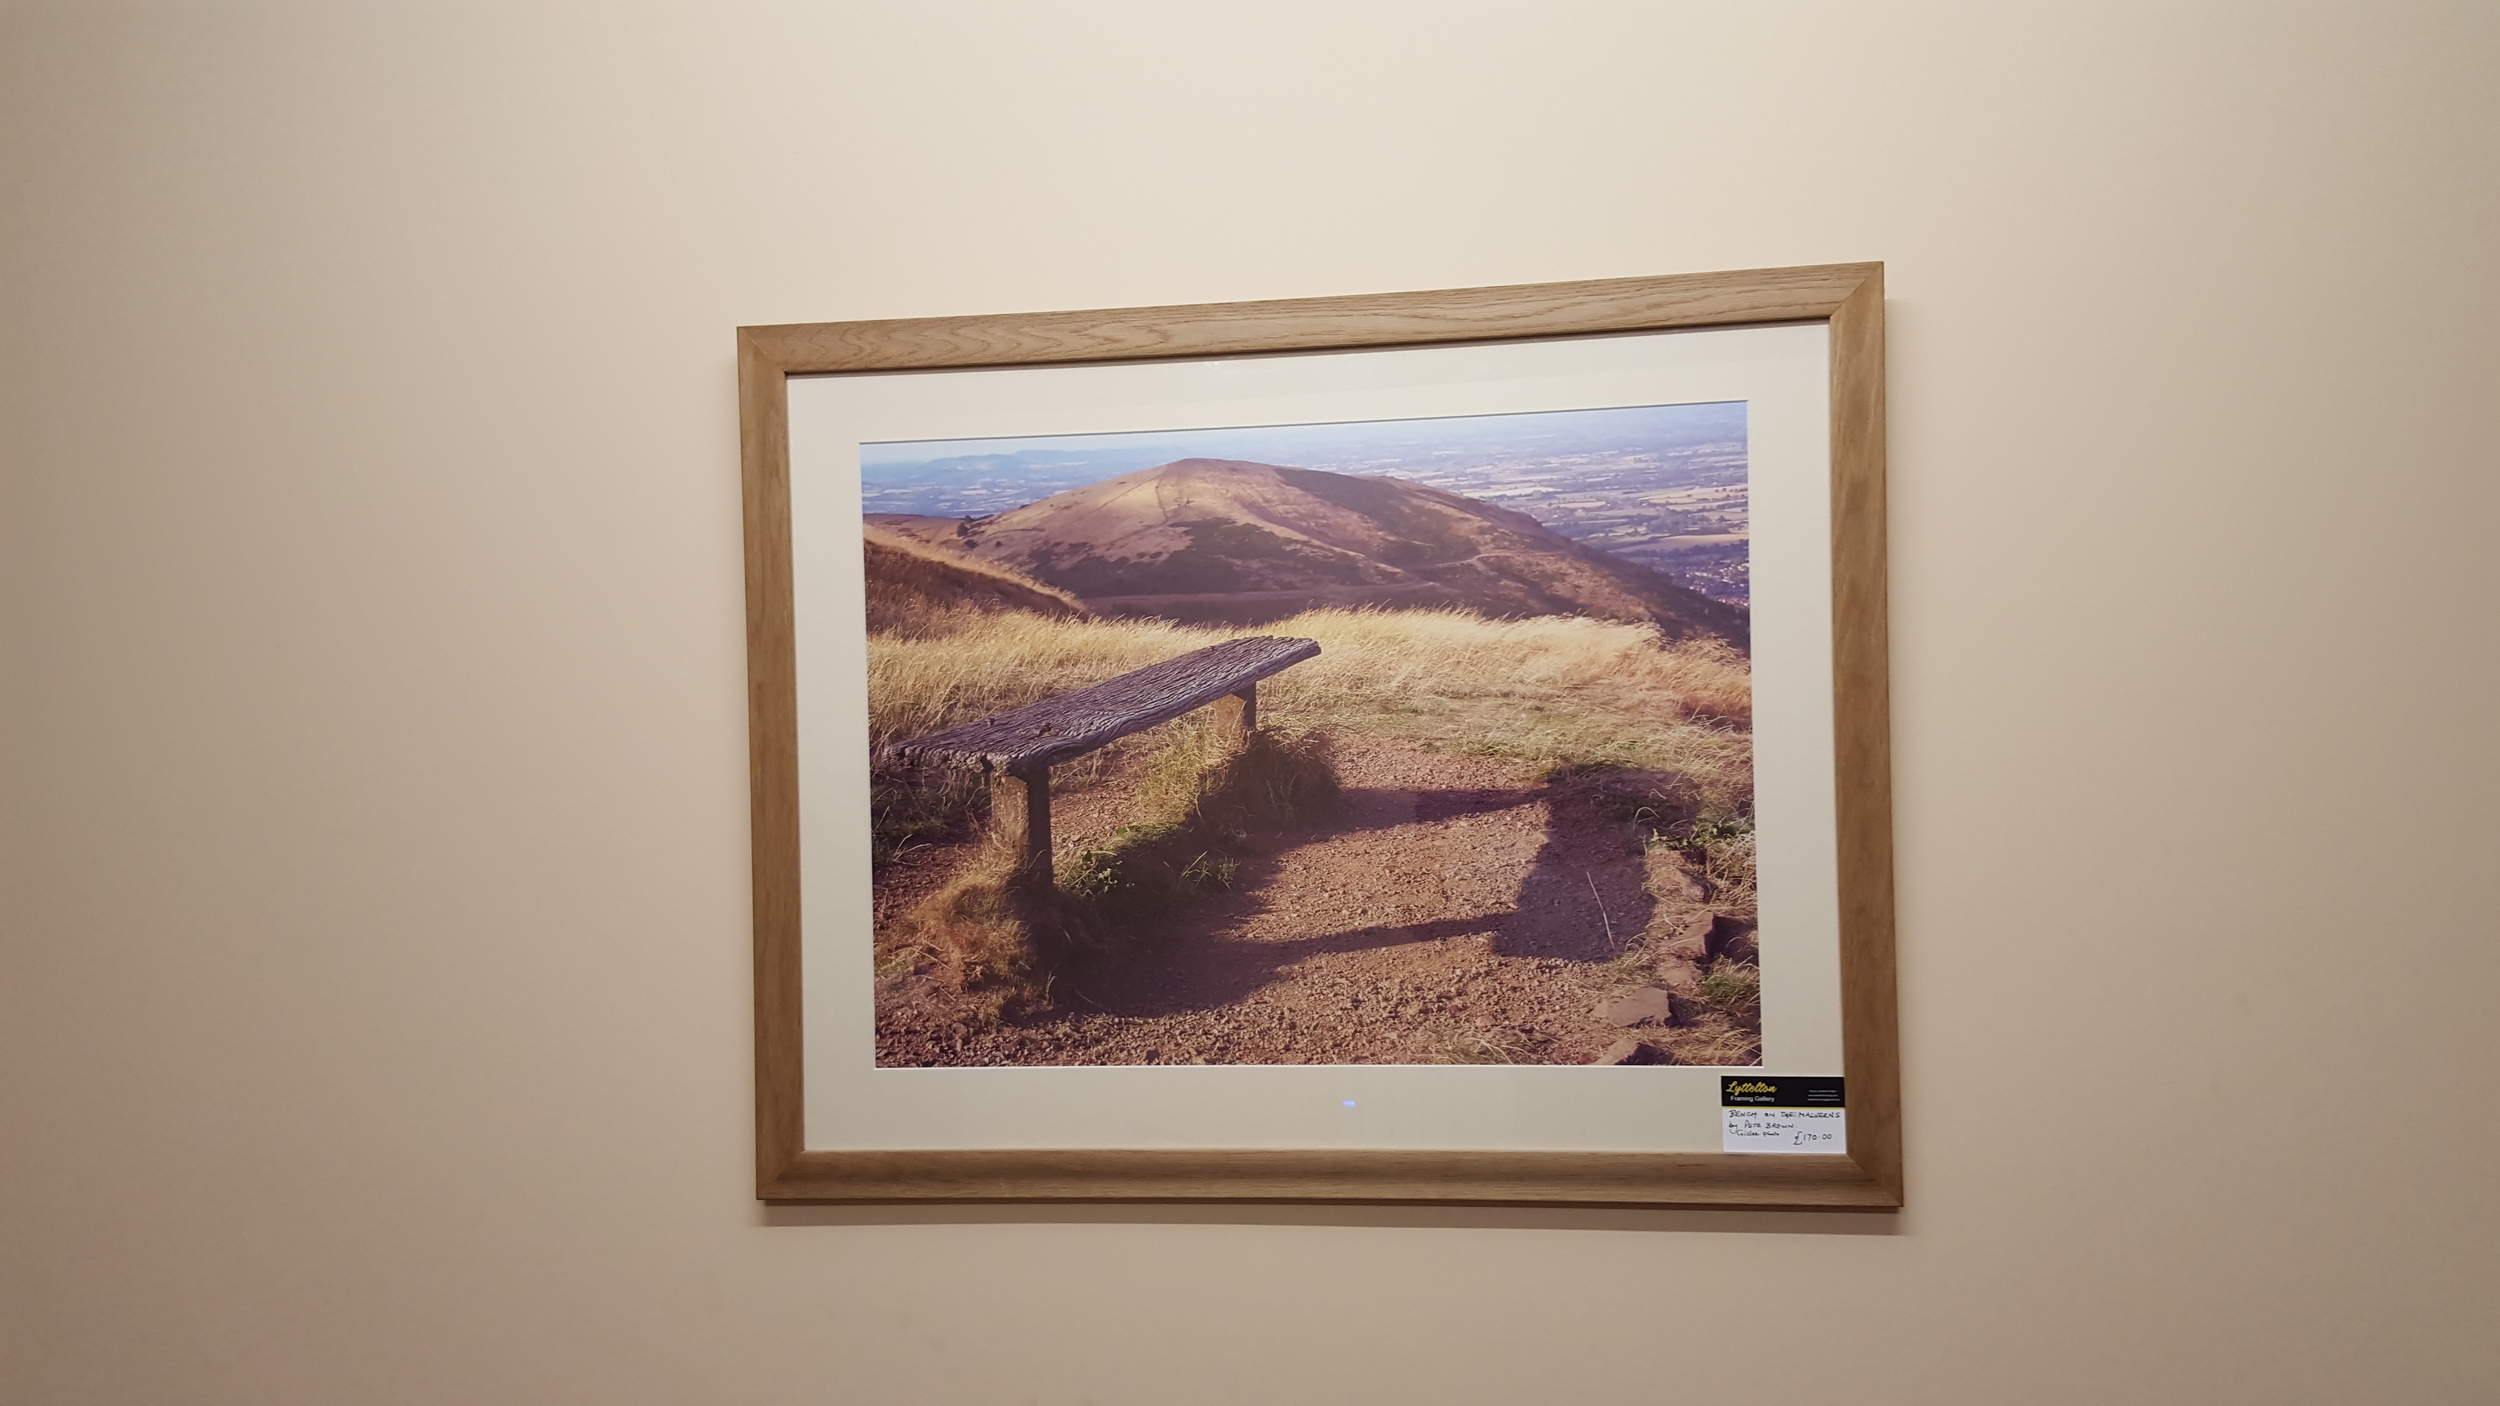 A Wonderful Picture chosen by Liz and kindly displayed by the Lyttleton Framing Gallery